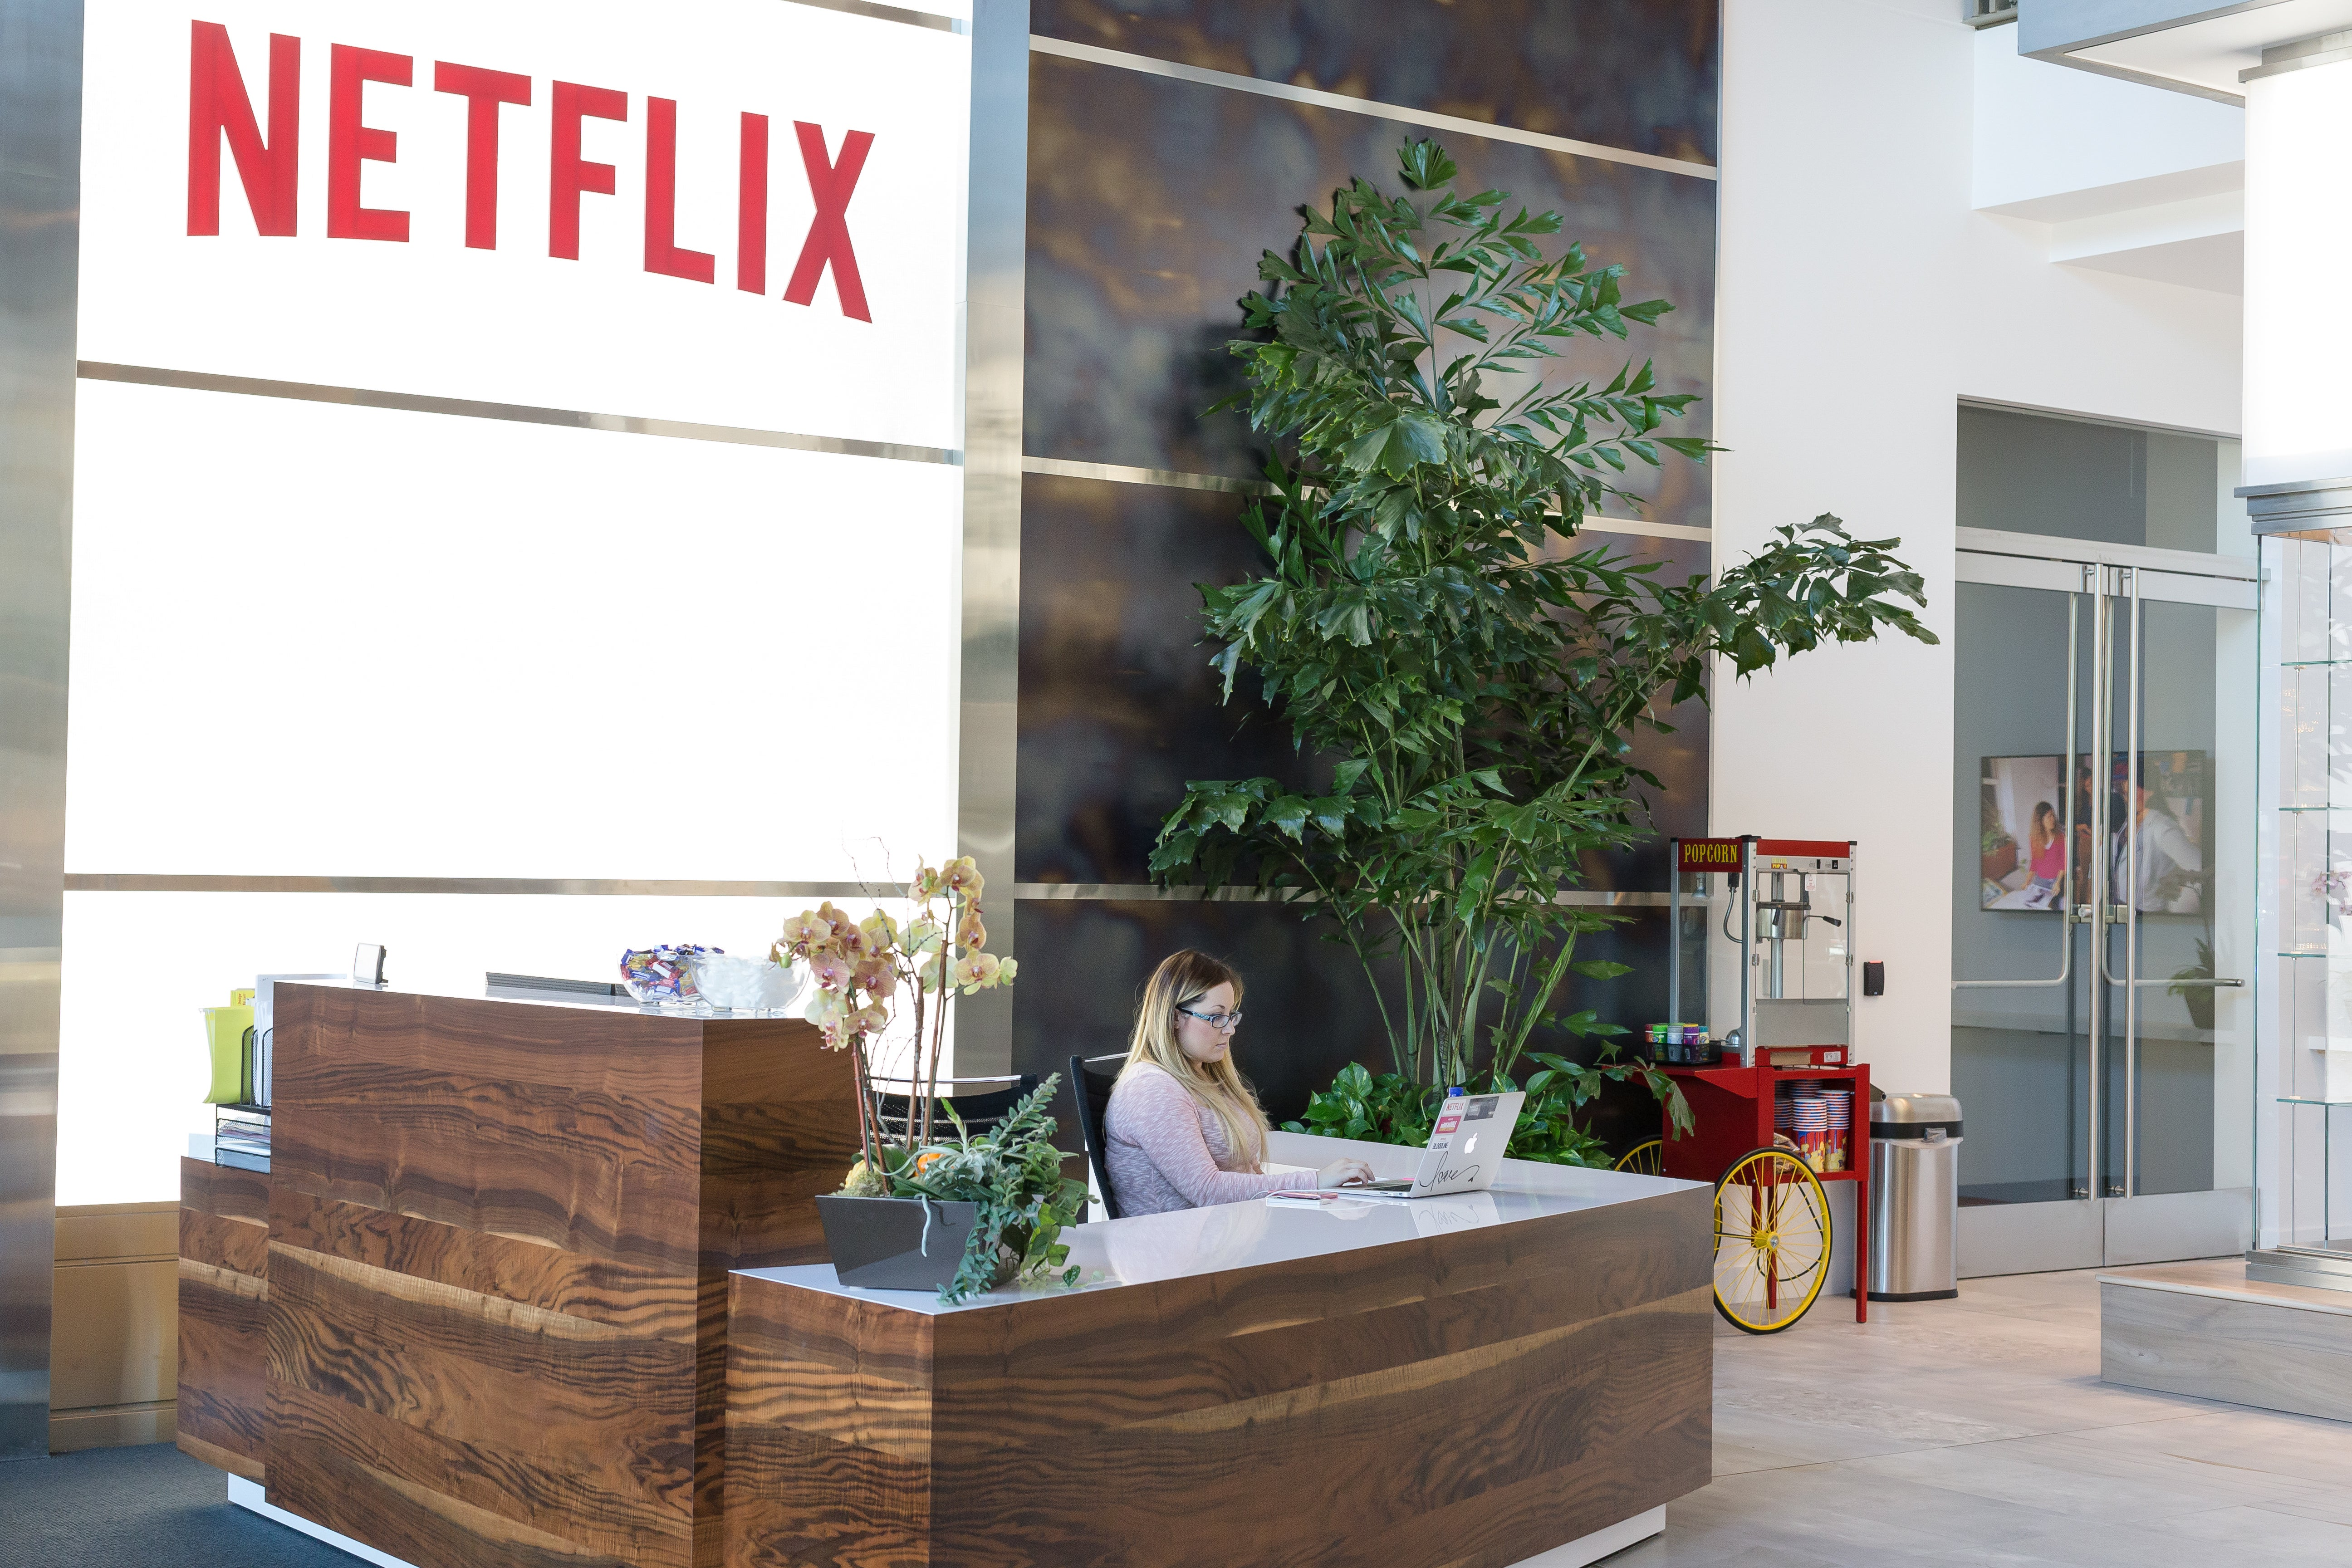 The reception desk at Netflix's Los Gatos office.